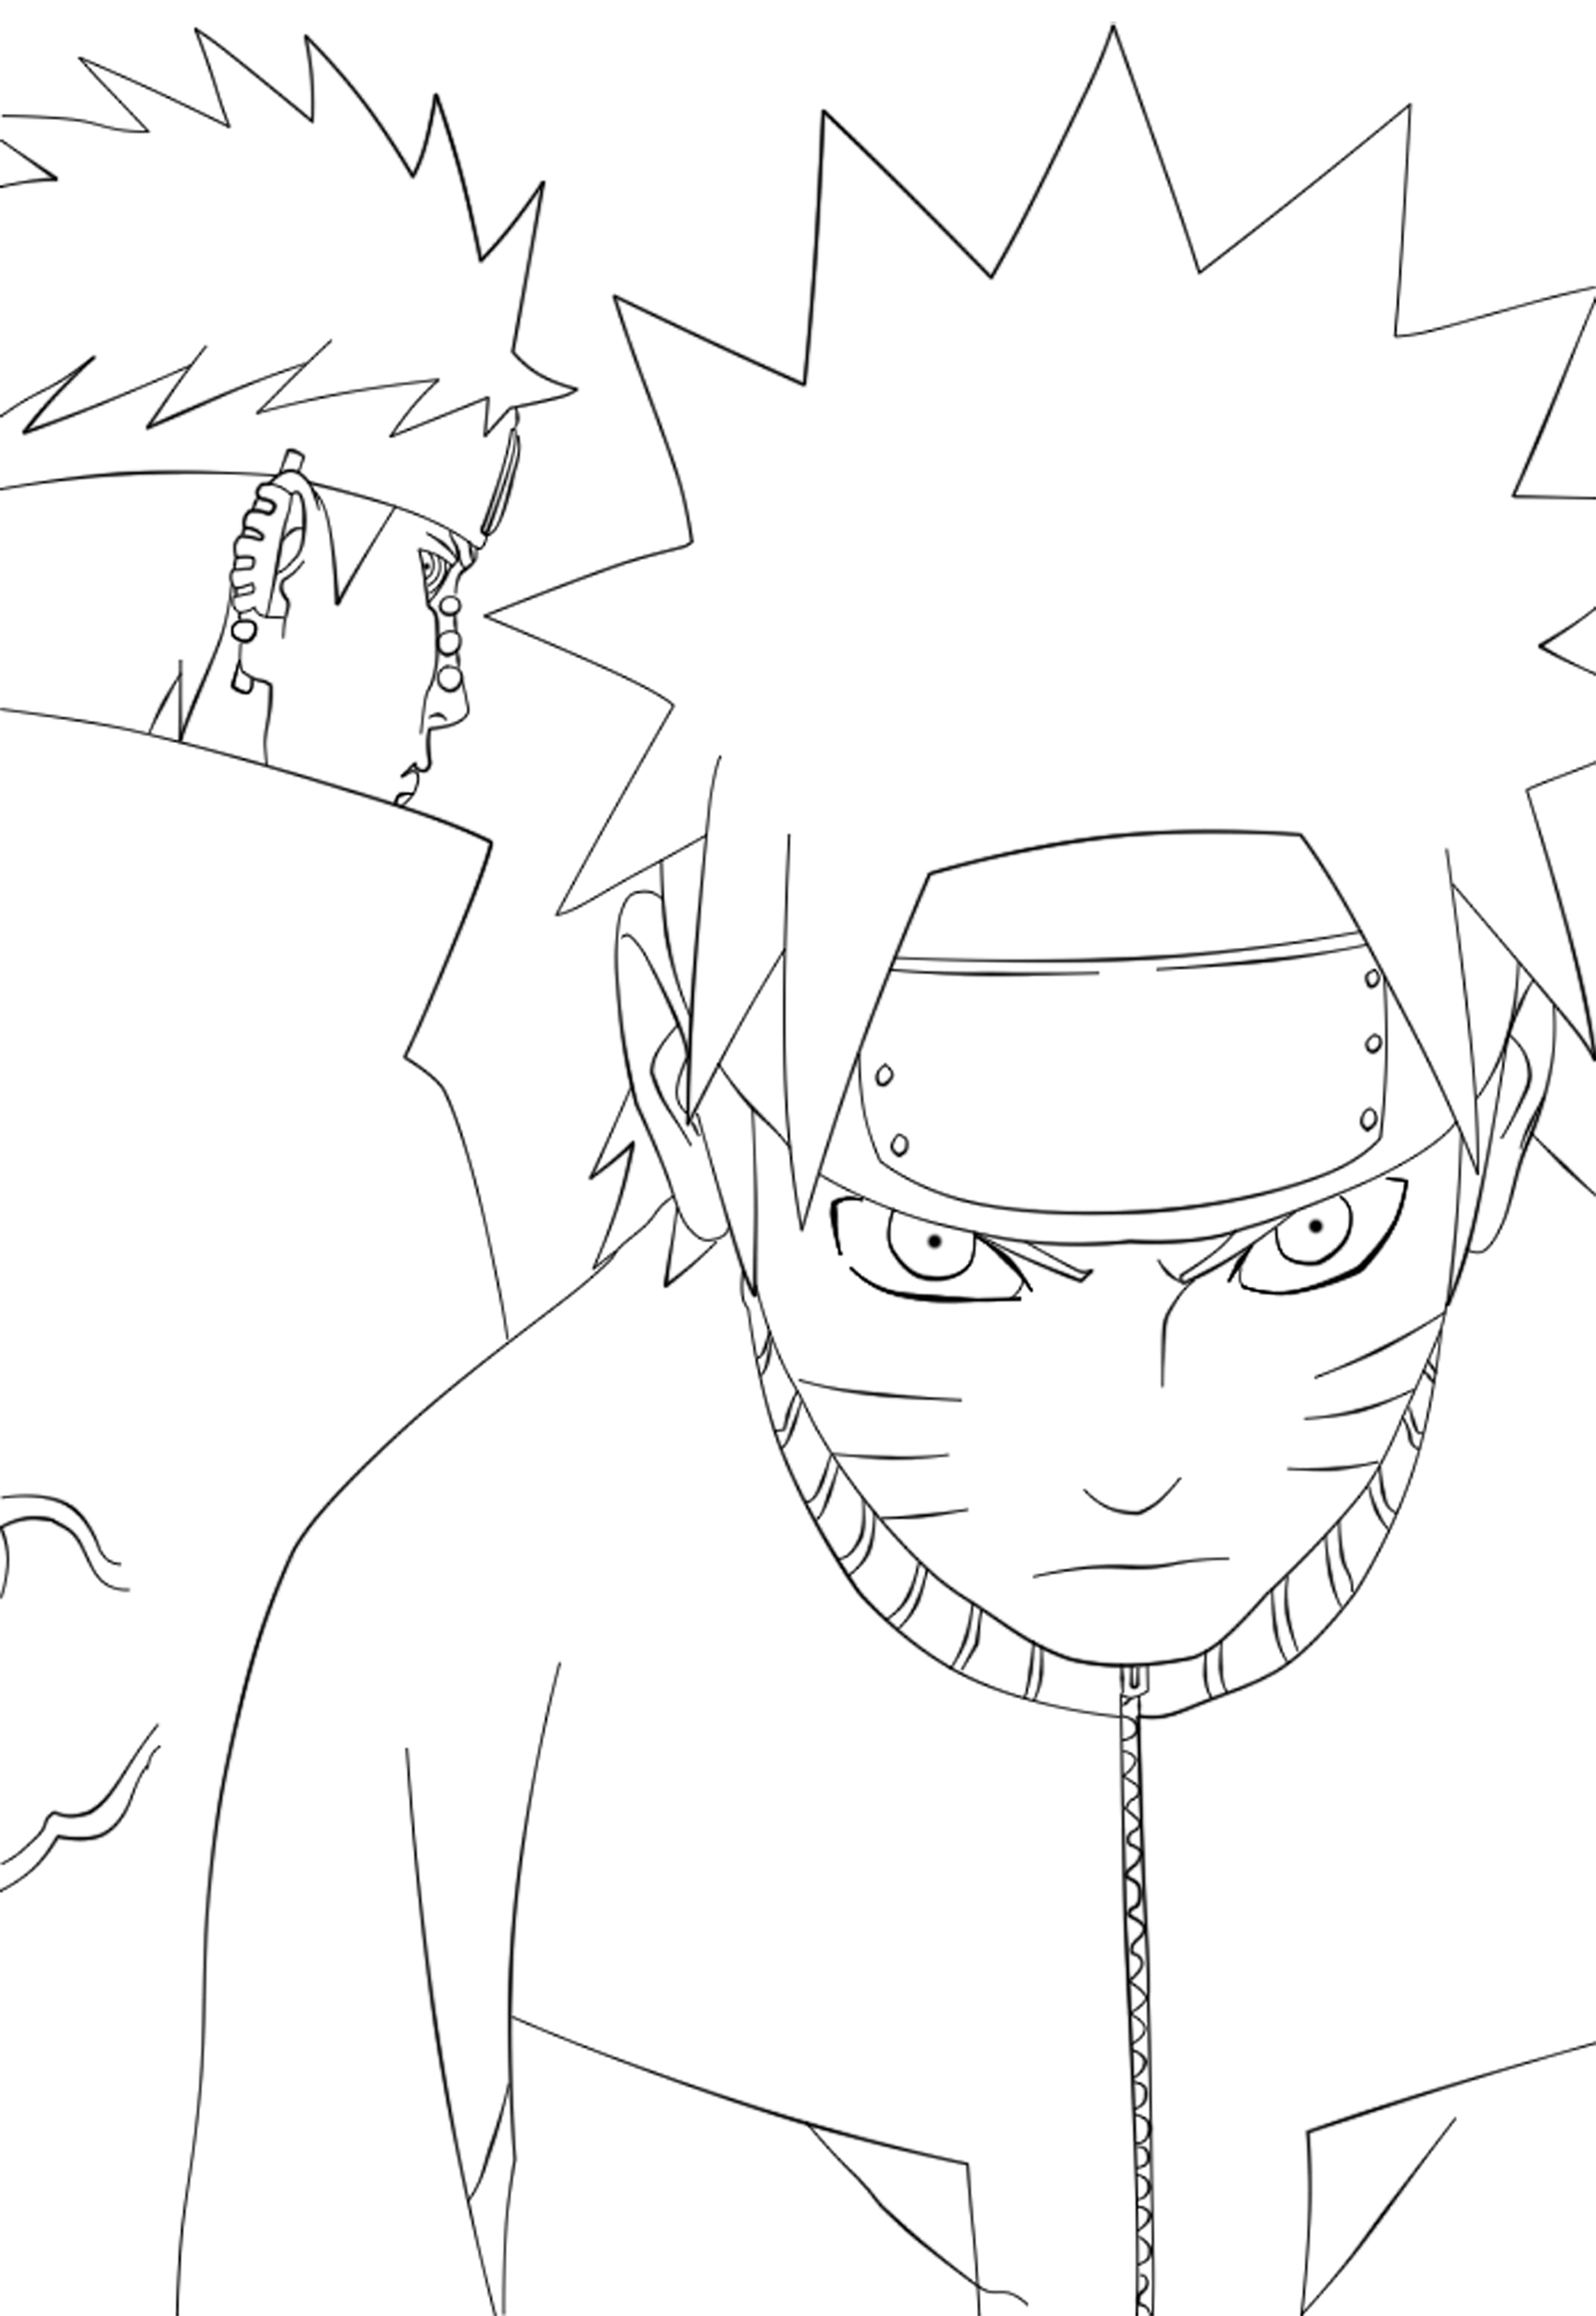 Lineart Naruto : Naruto and pain lineart by stephadri on deviantart